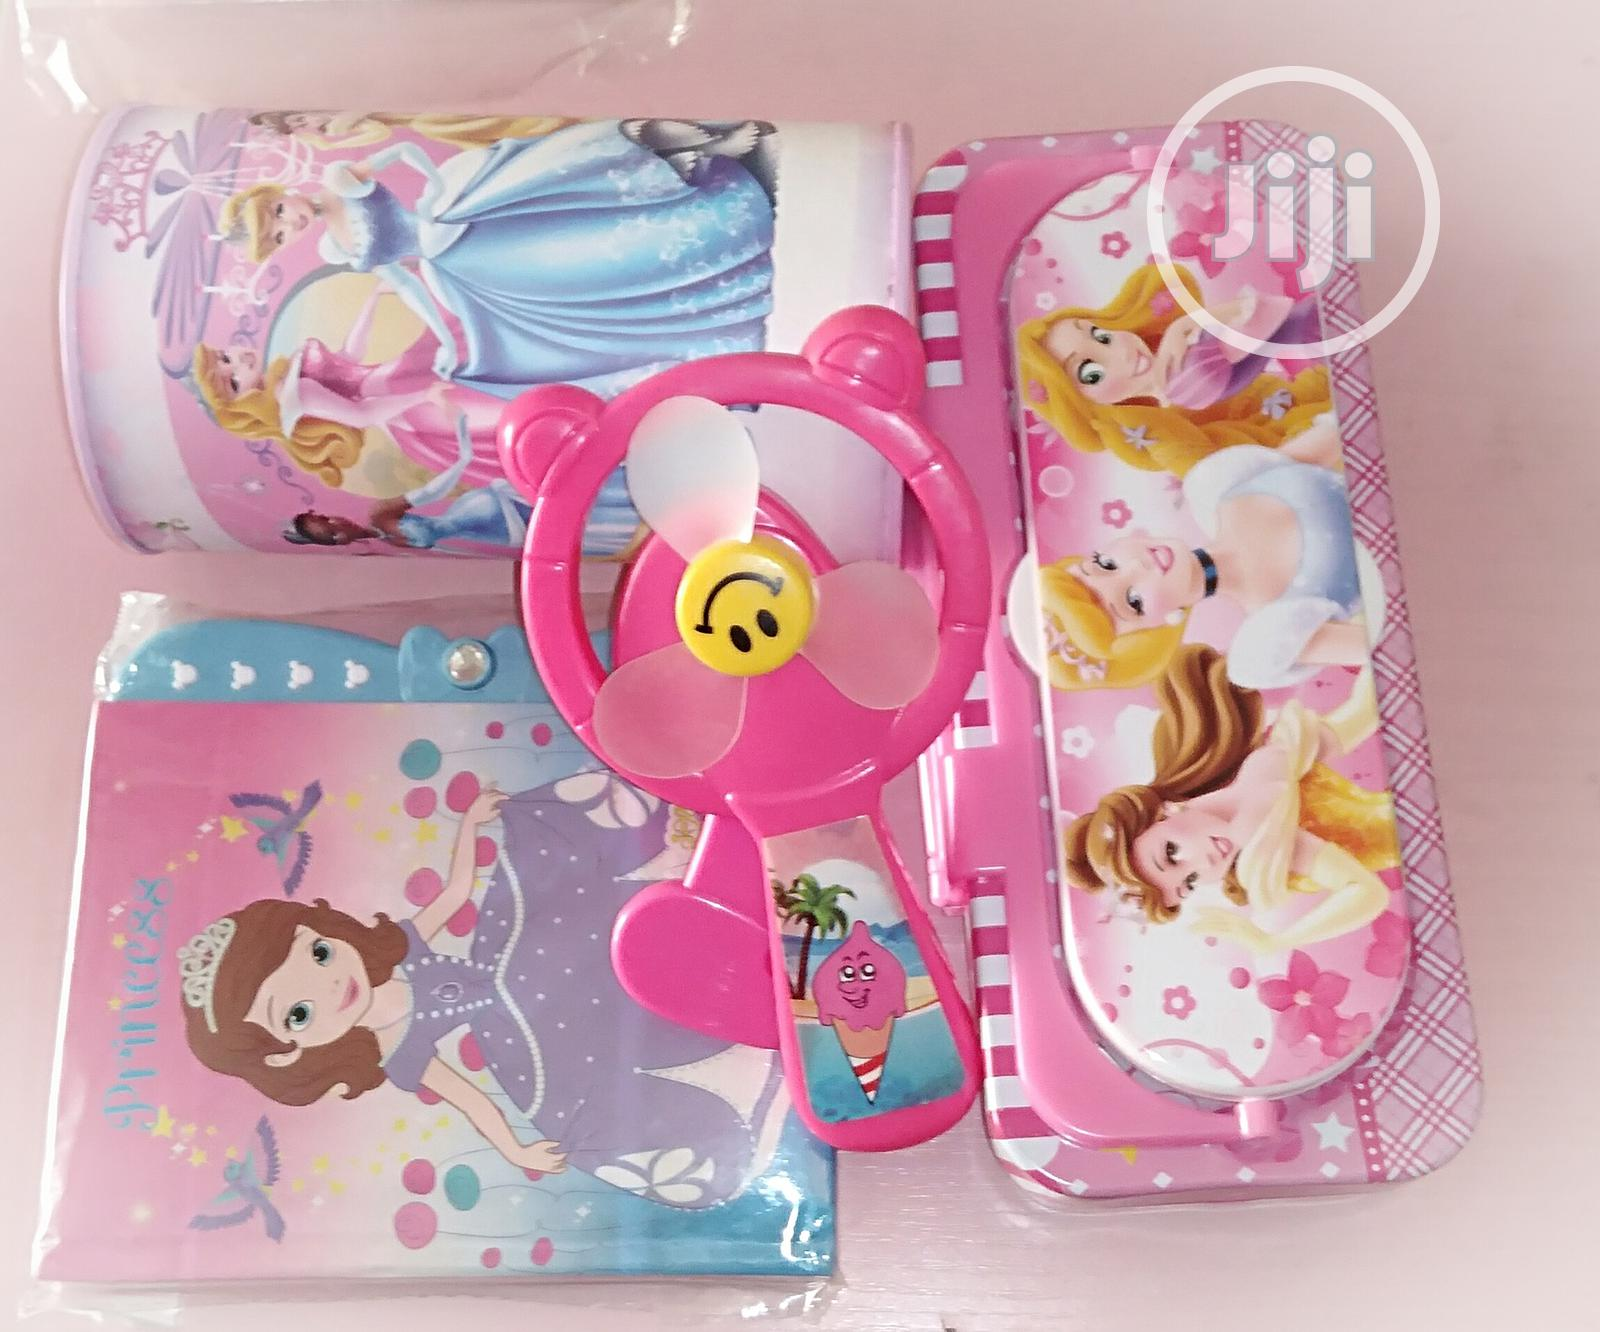 Stylish Party Packs For Kids Birthday Celebration | Babies & Kids Accessories for sale in Alimosho, Lagos State, Nigeria